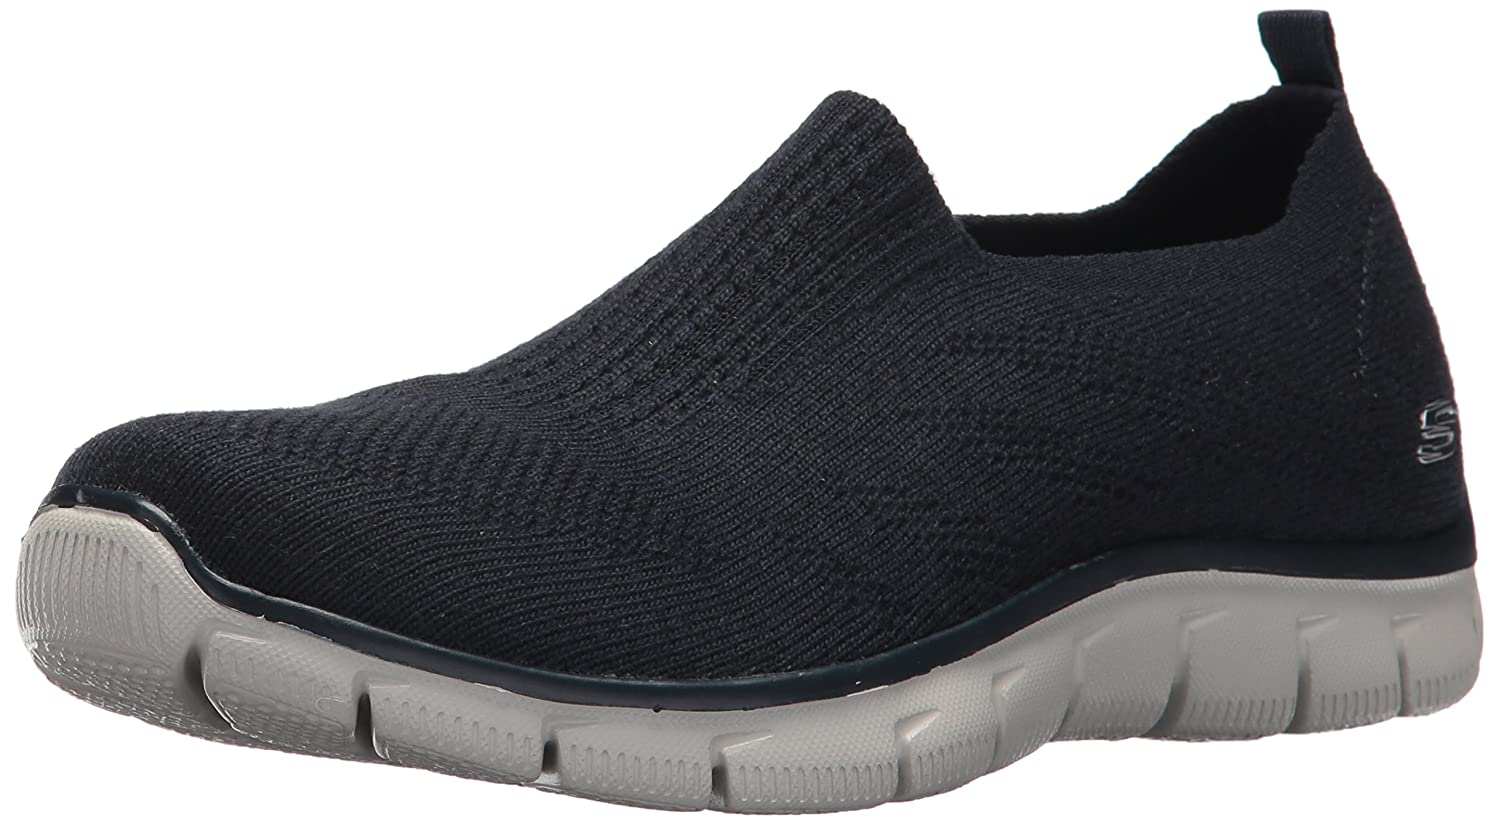 Skechers Women's Empire Clear As Day Sneaker B01NCXS8M8 7.5 B(M) US|Navy